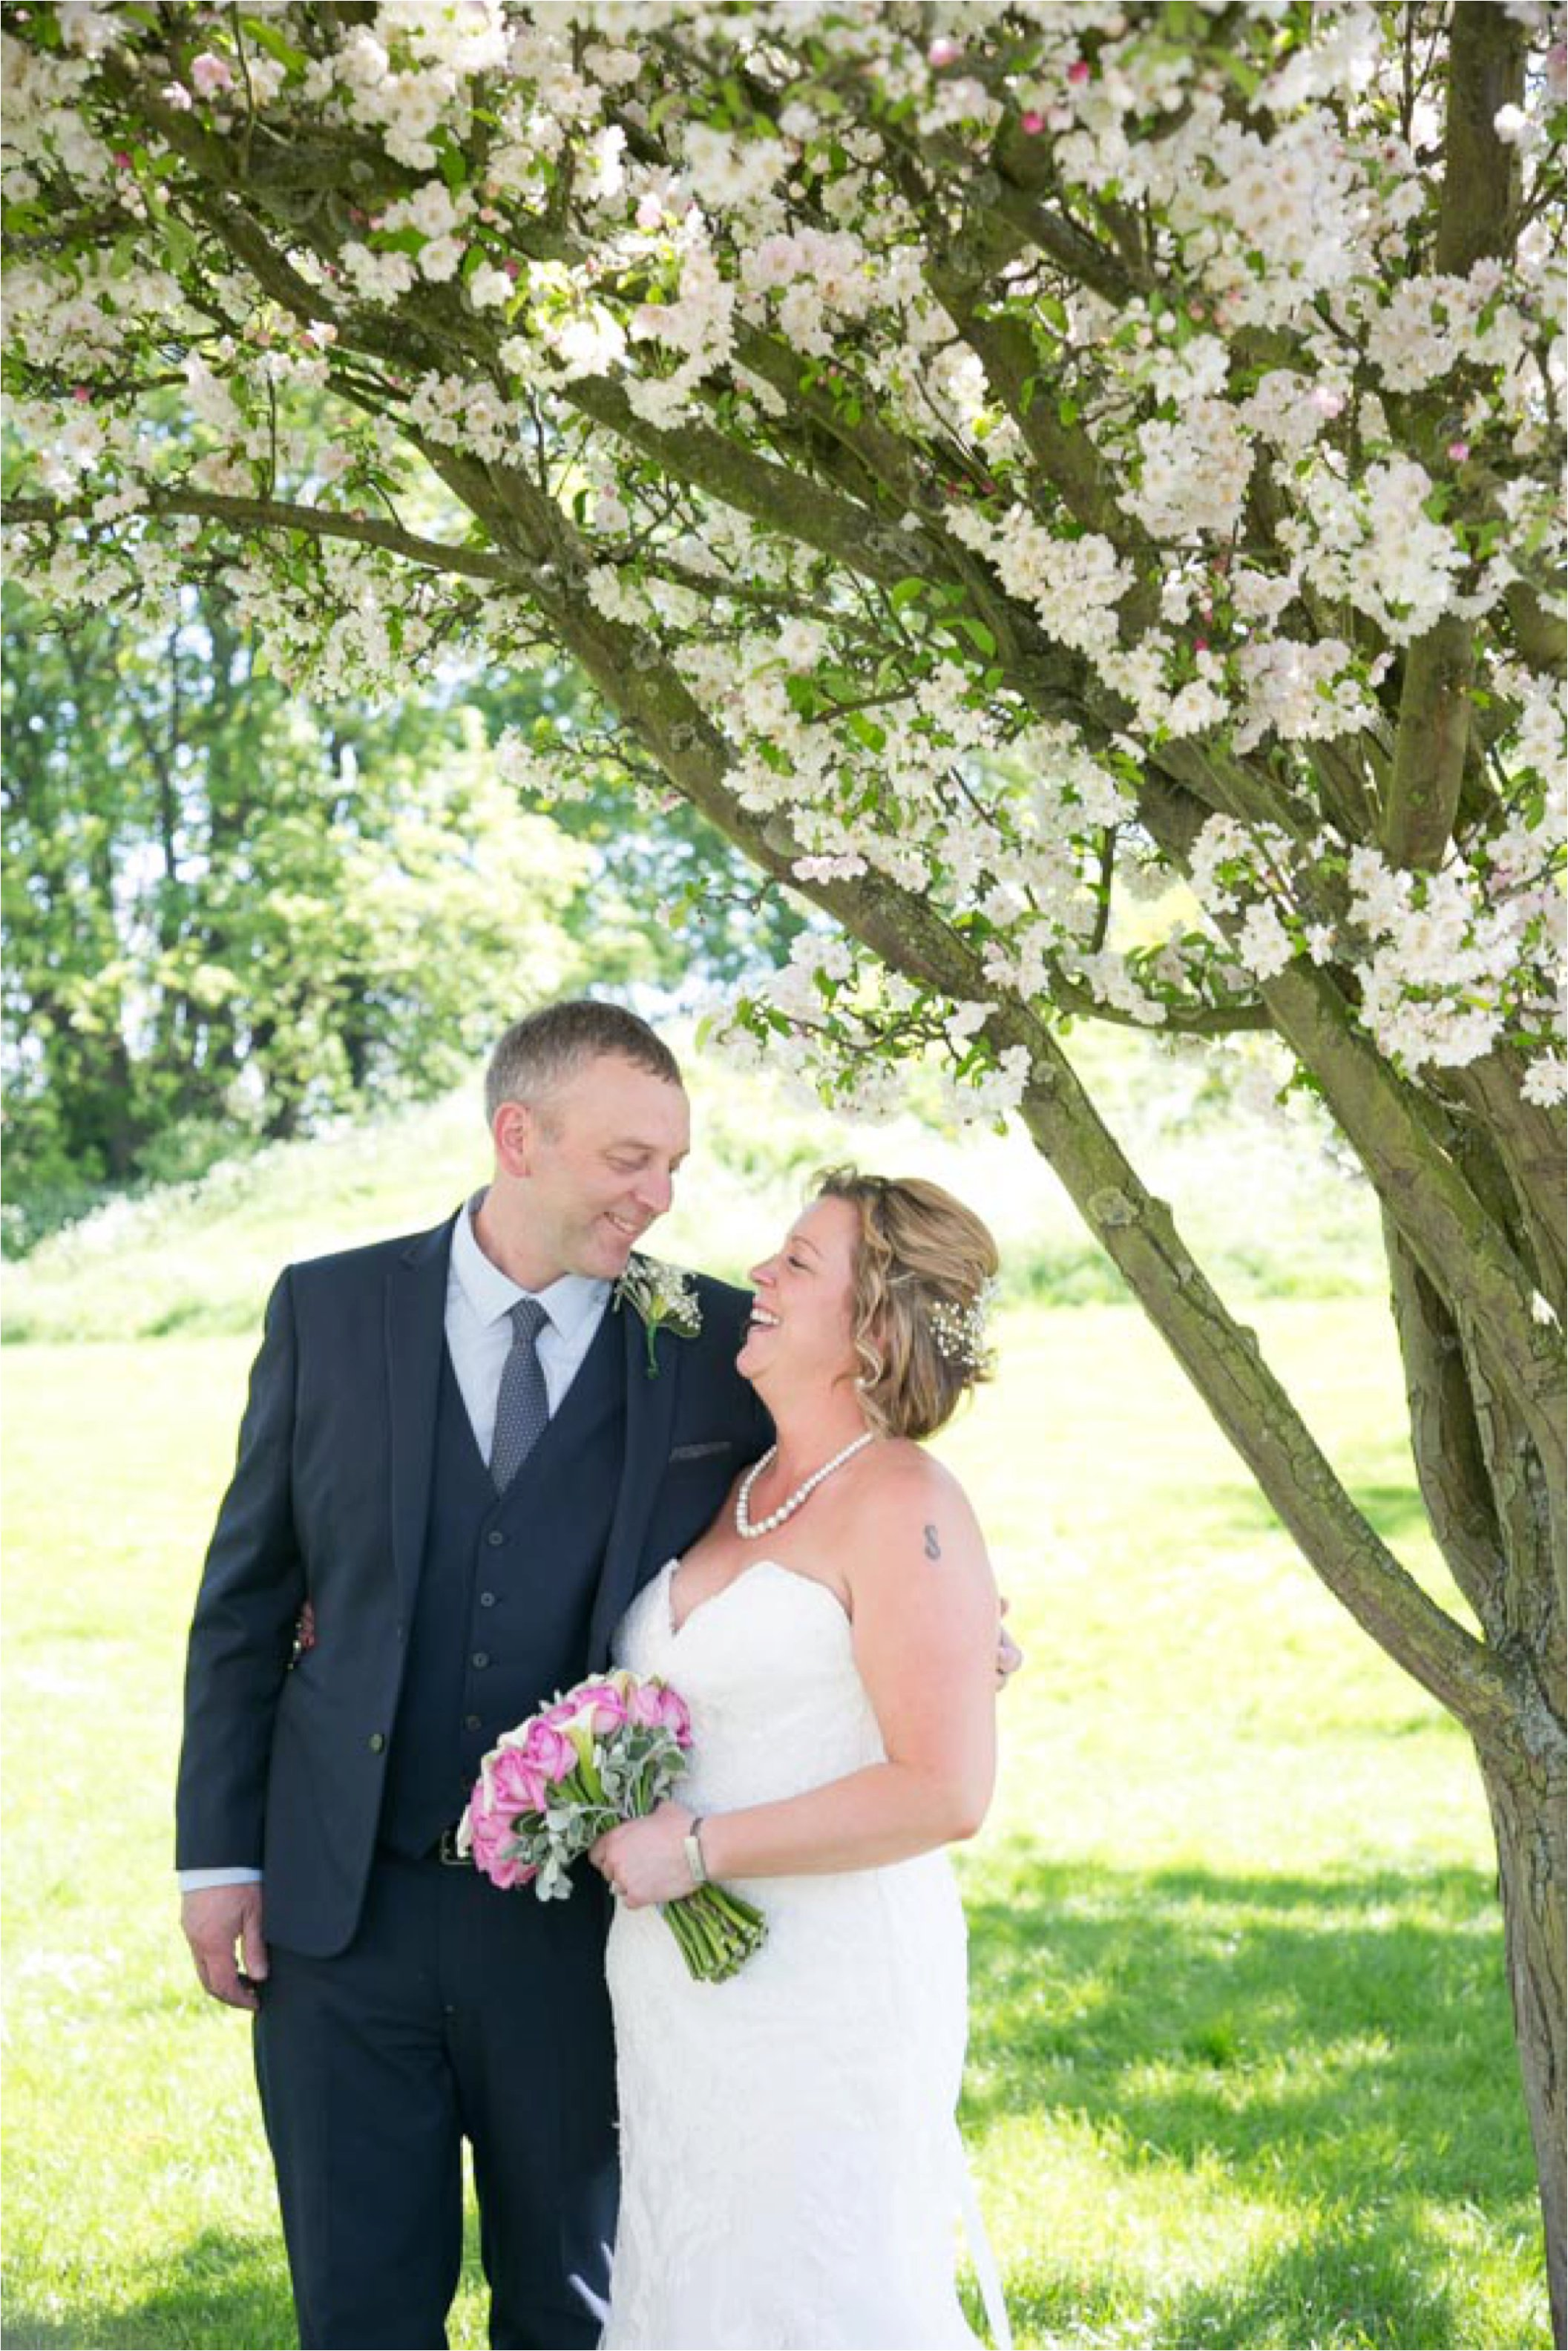 wedding portrait photography in cambridge with blossom in the tree